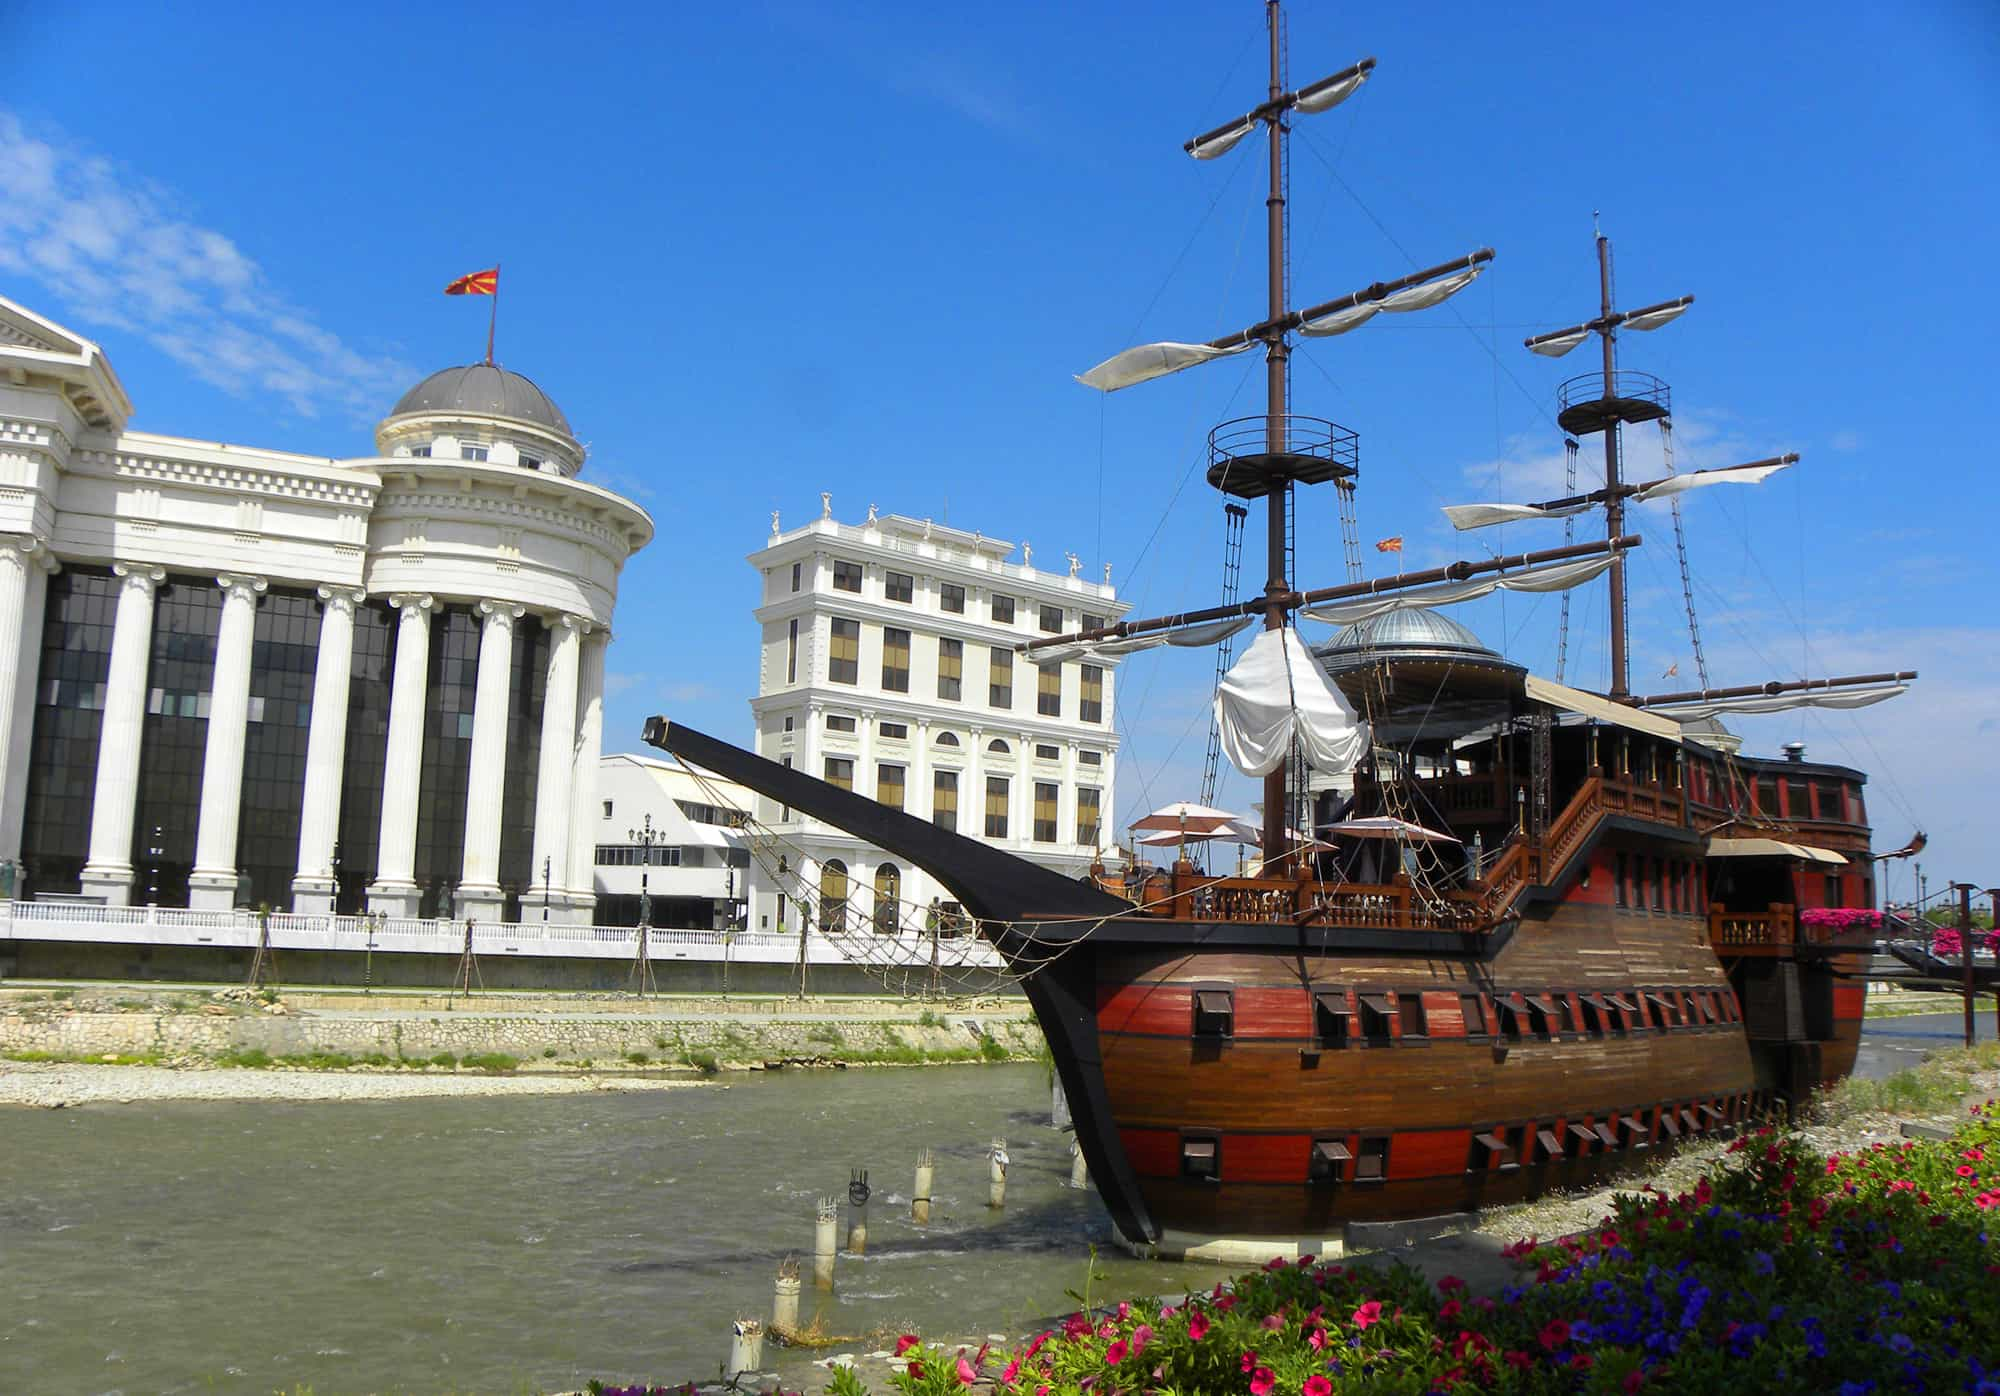 Skopje. Why Skopje is one of the Strangest Places we've been